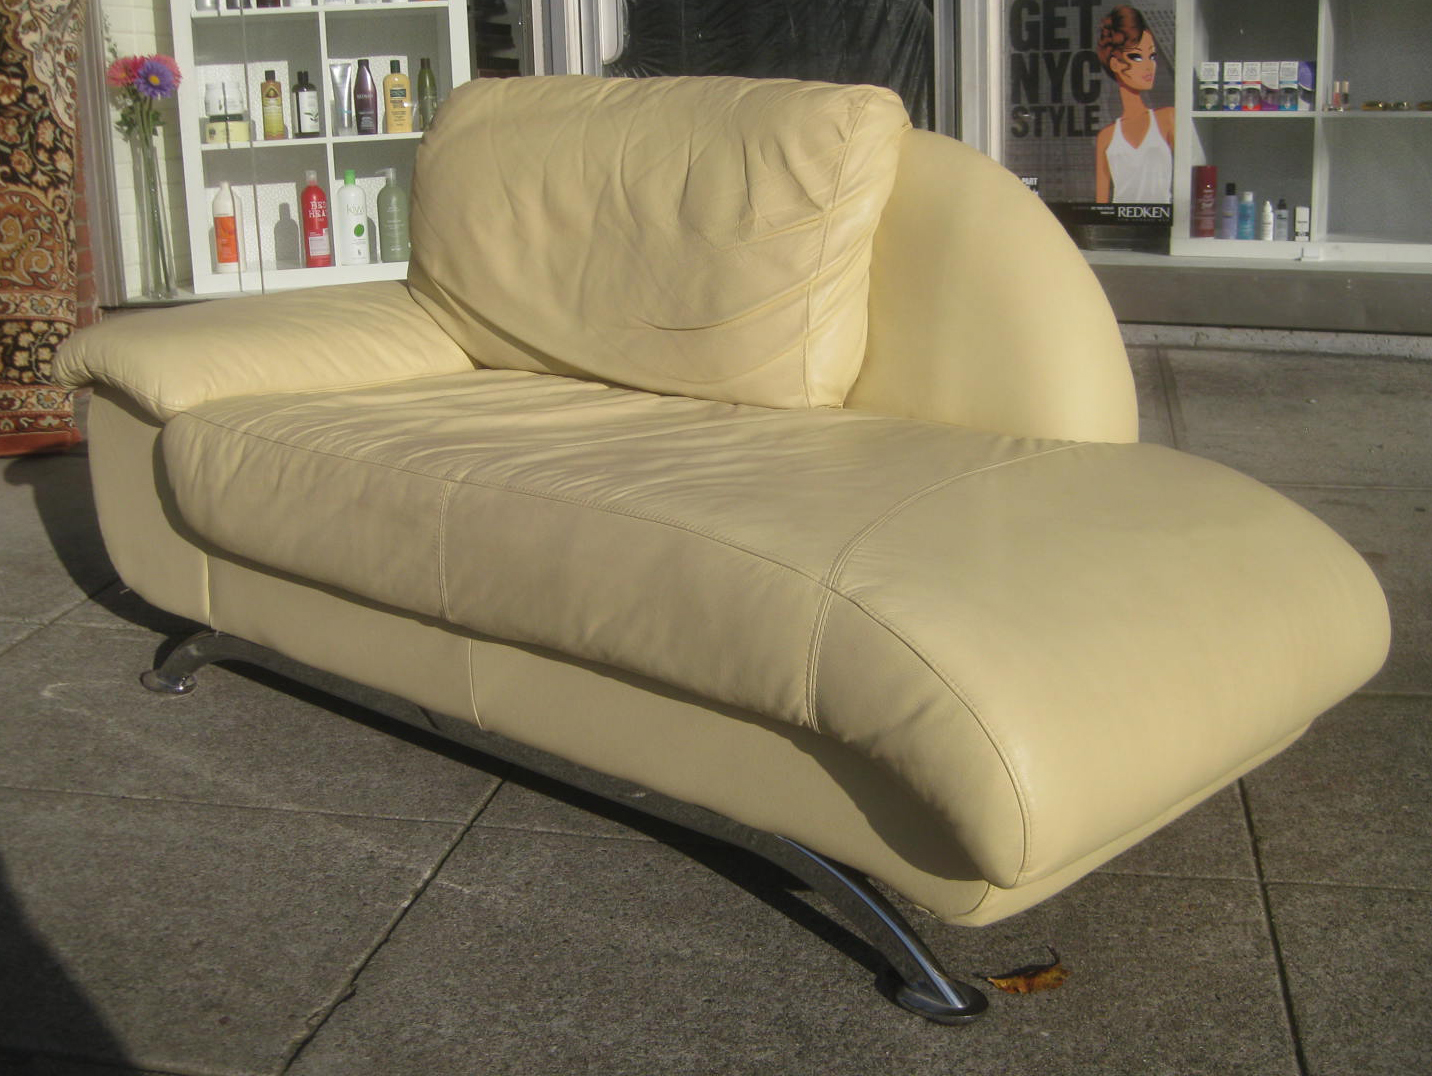 Sold Cream Leather Chaise Lounge 145